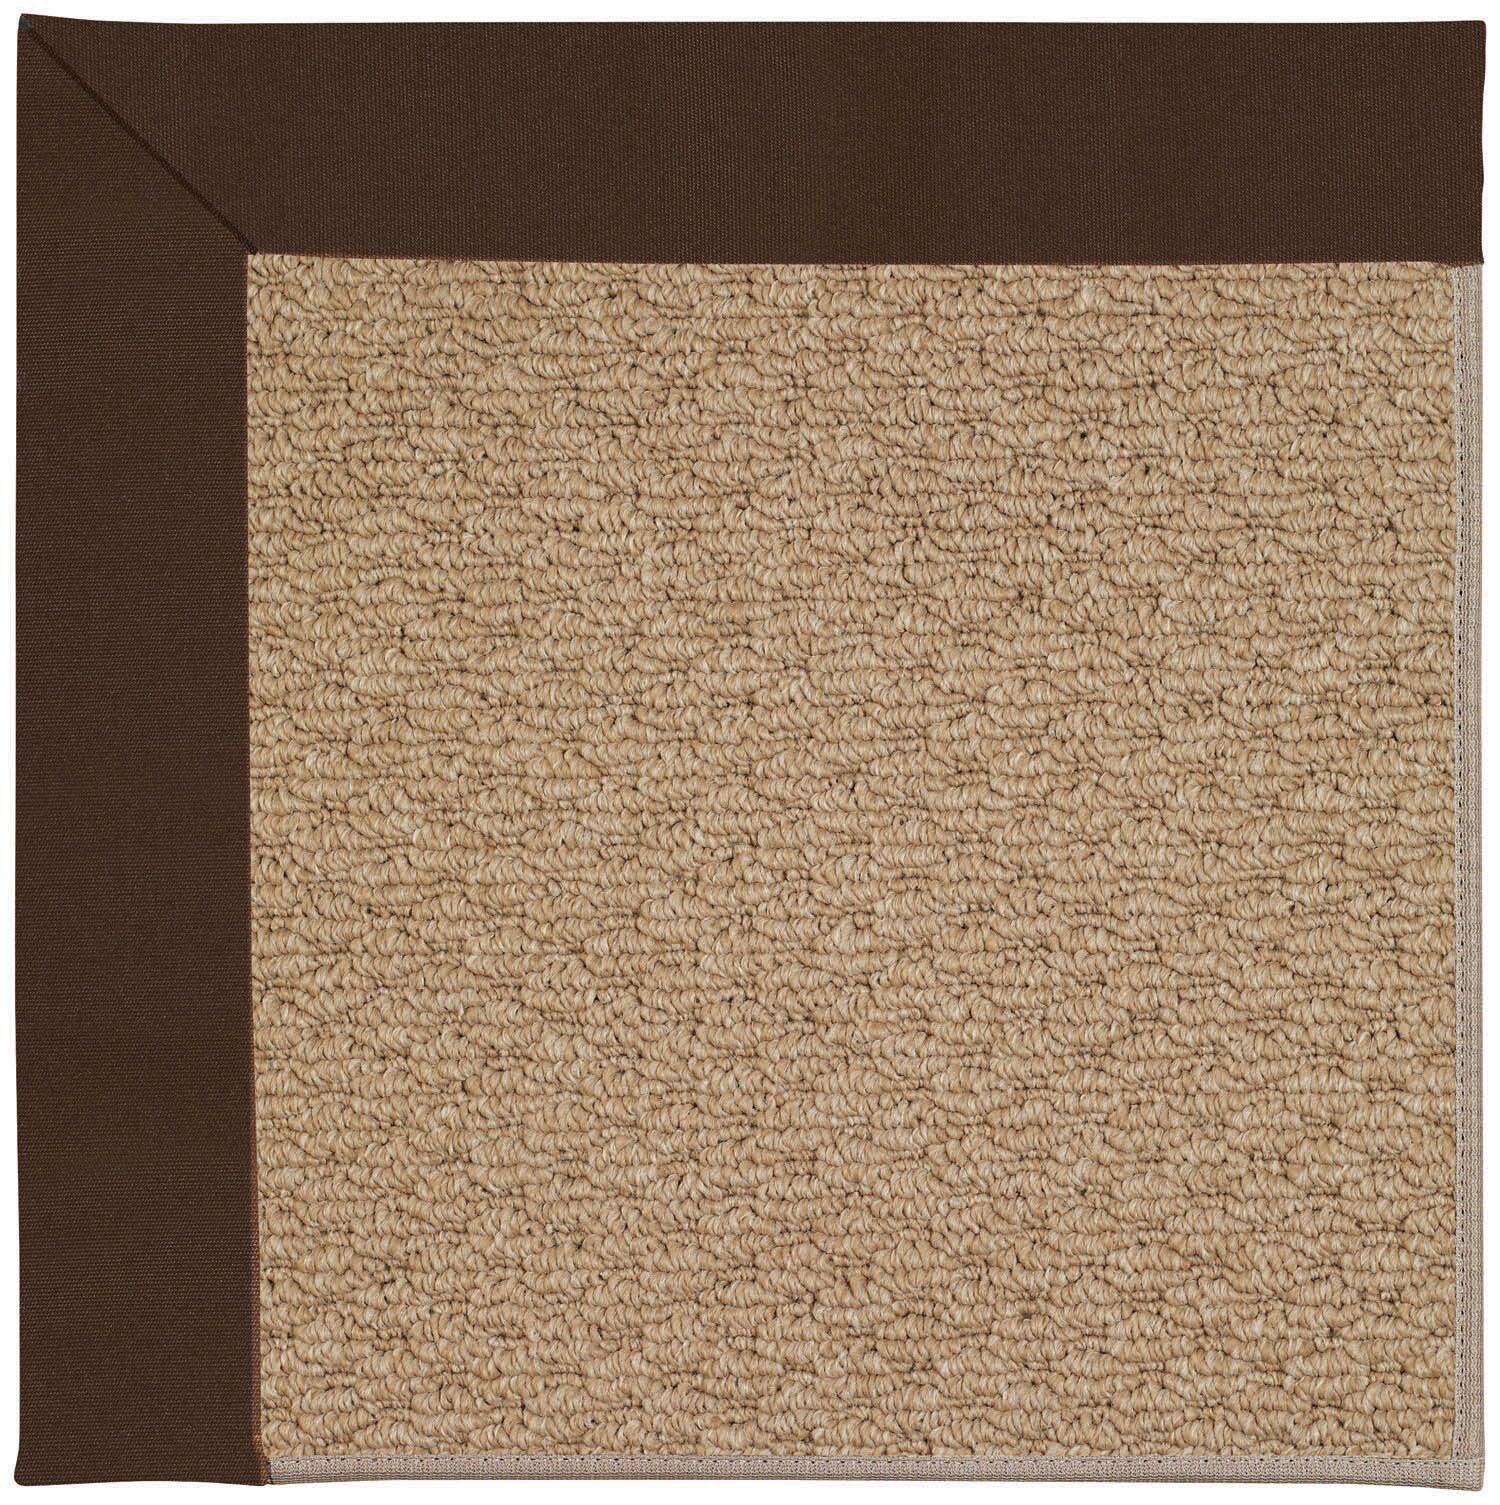 Lisle Machine Tufted Brown Indoor/Outdoor Area Rug Rug Size: Square 4'